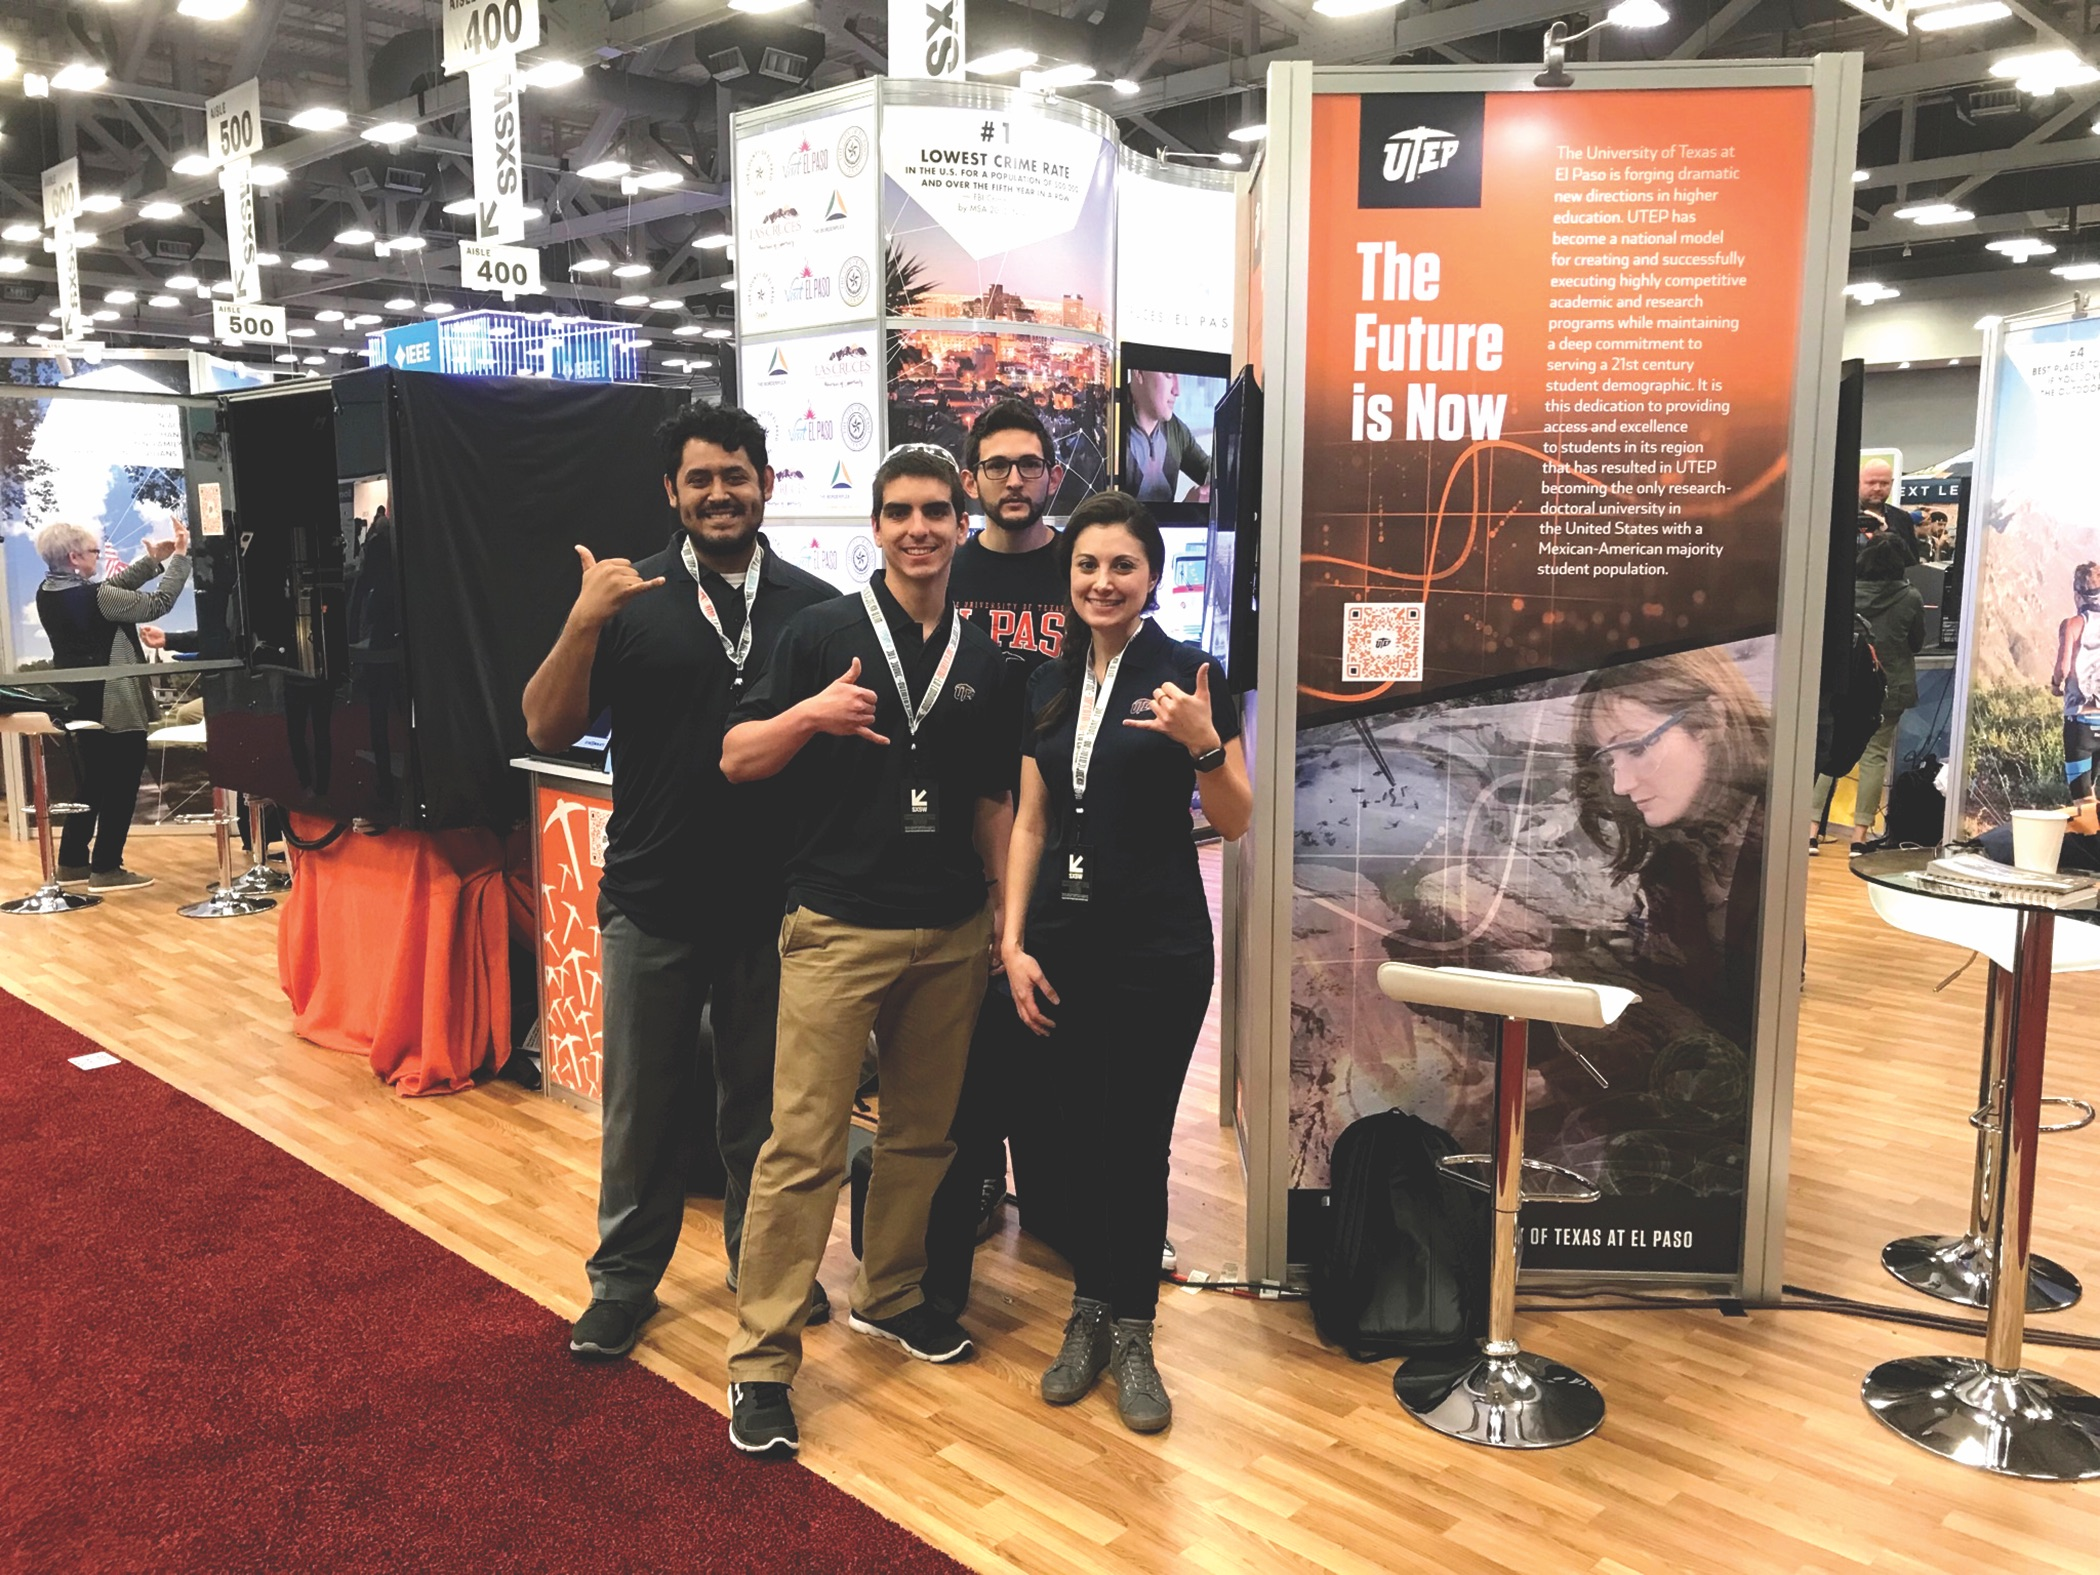 Above: A delegation from The University of Texas at El Paso attended the South by Southwest festival in Austin in March to showcase the University's growing list of technological advancements and learning opportunities. Attendees included, from left, Jose F. Motta, graduate research assistant for the W.M. Keck Center for 3D Innovation; Xavier Jimenez, graduate research assistant for the Keck Center; Erik Pavia, clinical professor in UTEP's College of Business Administration; and Laurie Banitch, development officer for Asset Management and Development. Photo: Courtesy